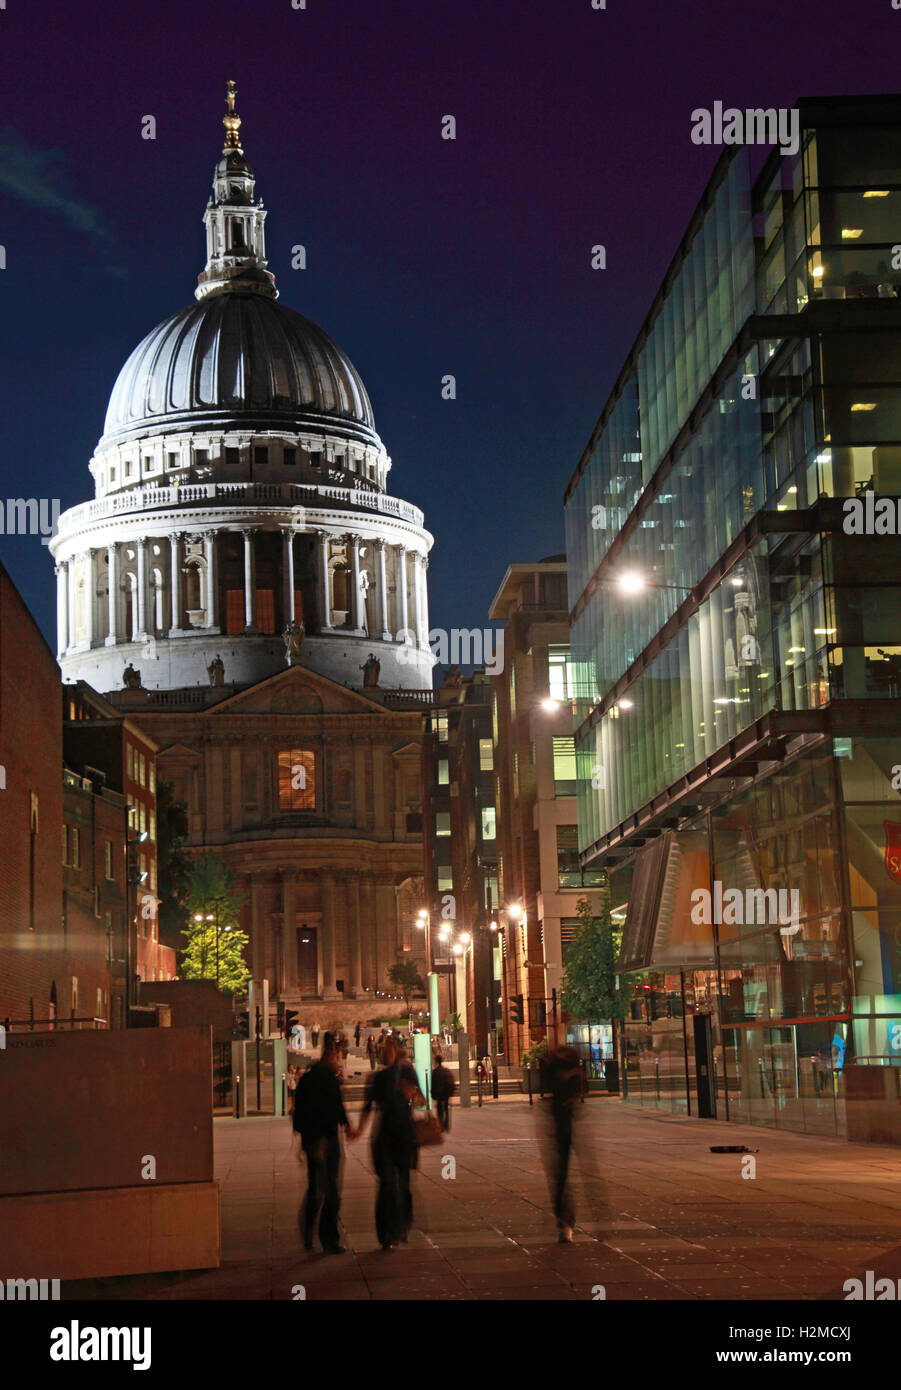 night,long,exposure,longexposure,Christianity,Religion,religious,building,great,fire,of,Christopher,Wren,wide,angle,wideangle,tourist,tourism,travel,view,pilgrimage,famous,heritage,historic,landmark,landmarks,building,citadel,capital,cities,city,St Pauls,City of London,St Pauls Cathedral,GoTonySmith,@HotpixUK,Tony,Smith,different,unique,famous,visitor,landmark,Great,Britain,UK,GB,GreatBritain,prayer,war,survivor,WWII,dome,skyline,iconic,city,scape,cityscape,icon,people,crowd,crowds,Buy Pictures of,Buy Images Of,Images of,Stock Images,Tony Smith,Photo of,Famous visitor landmark,Great Britain,War Survivor,Iconic London,Capital City